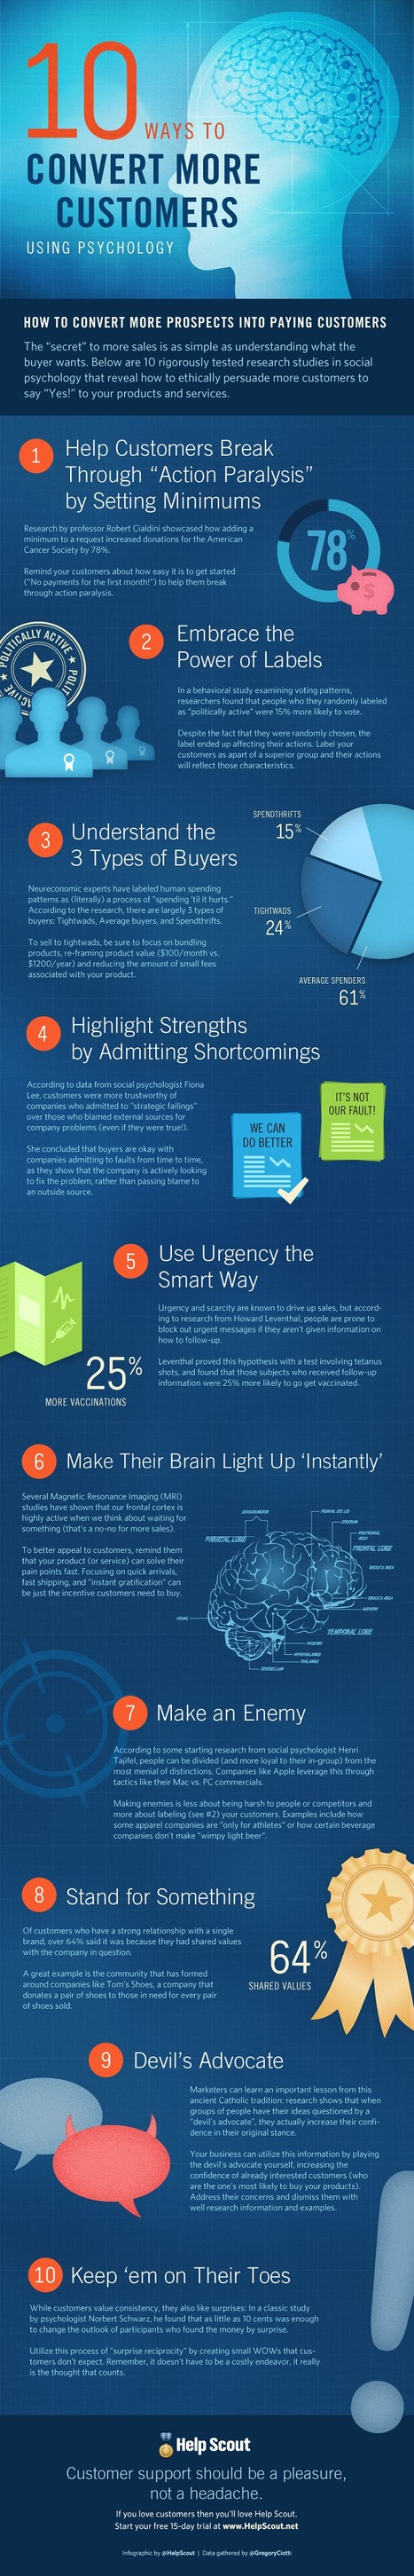 10 Ways to Convert More Customers With Psychology [INFOGRAPHIC] | digital marketing strategy | Scoop.it